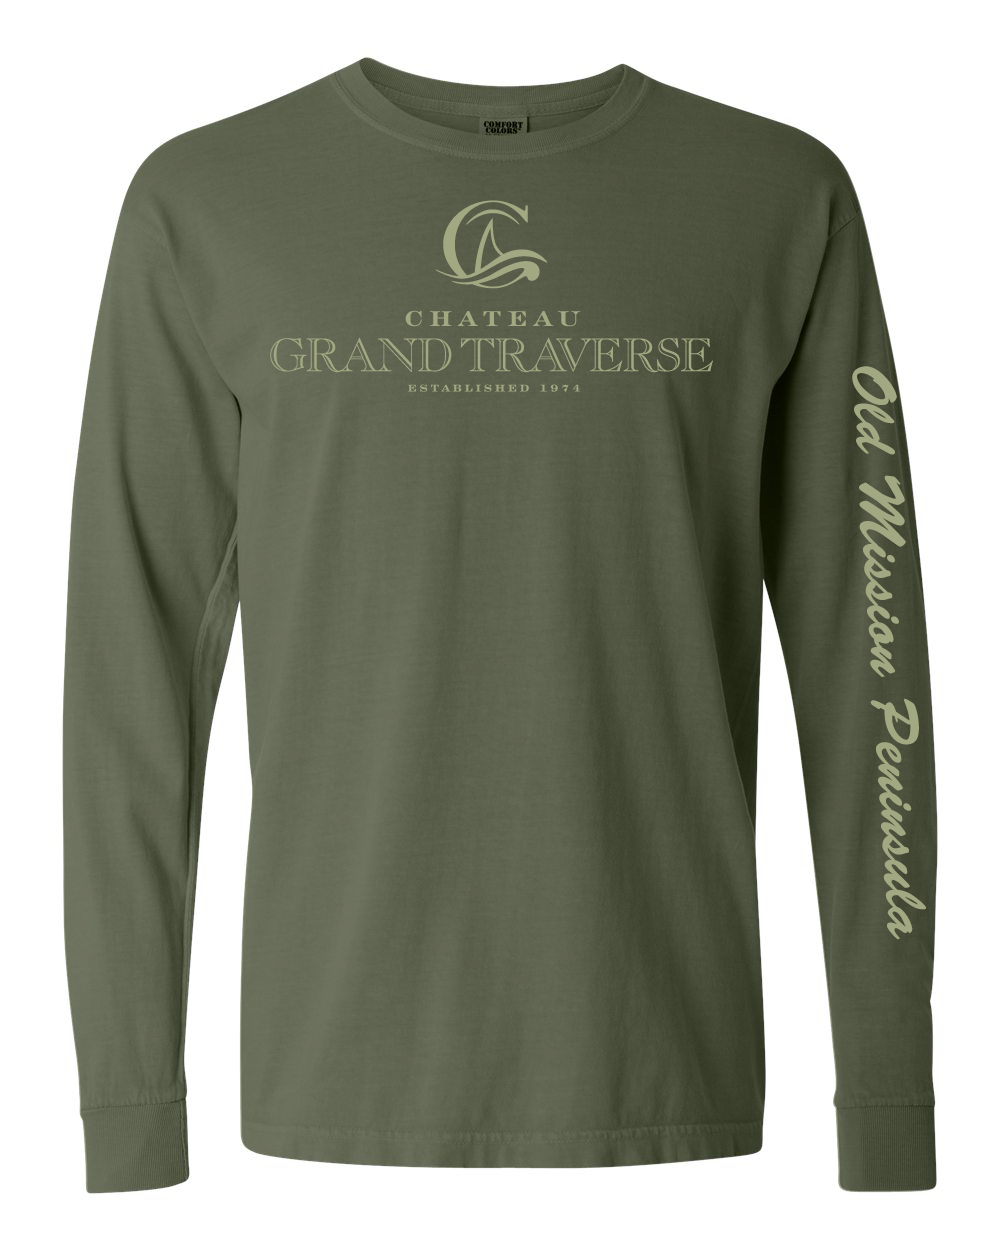 CGT Classic Long Sleeve Tee- Olive